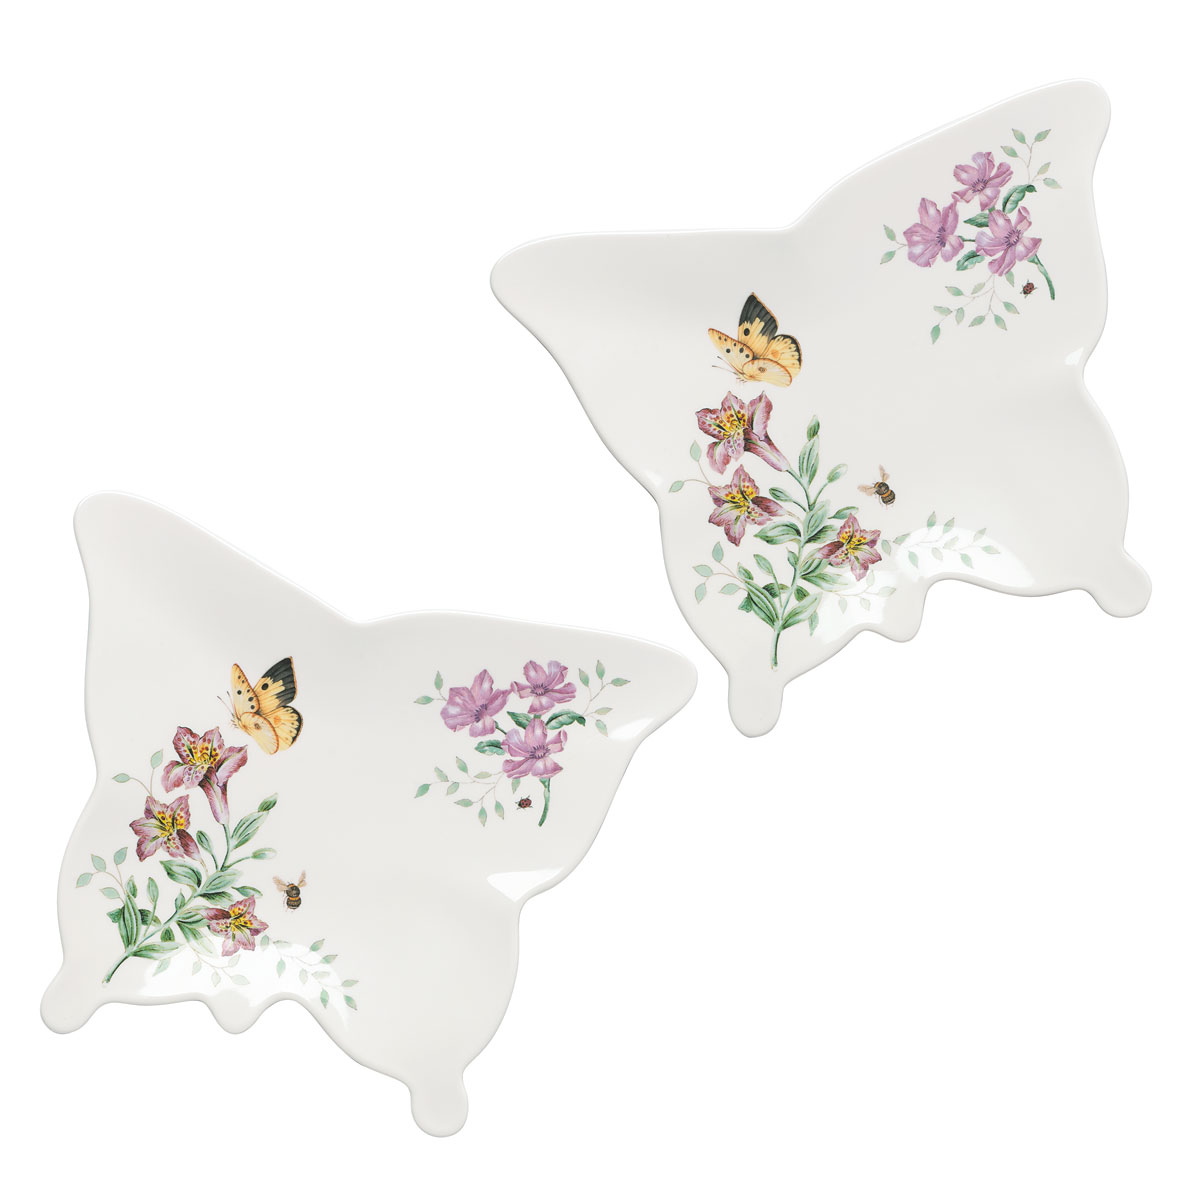 Lenox Butterfly Meadow Melamine Dinnerware Butterlfy Tray Pair